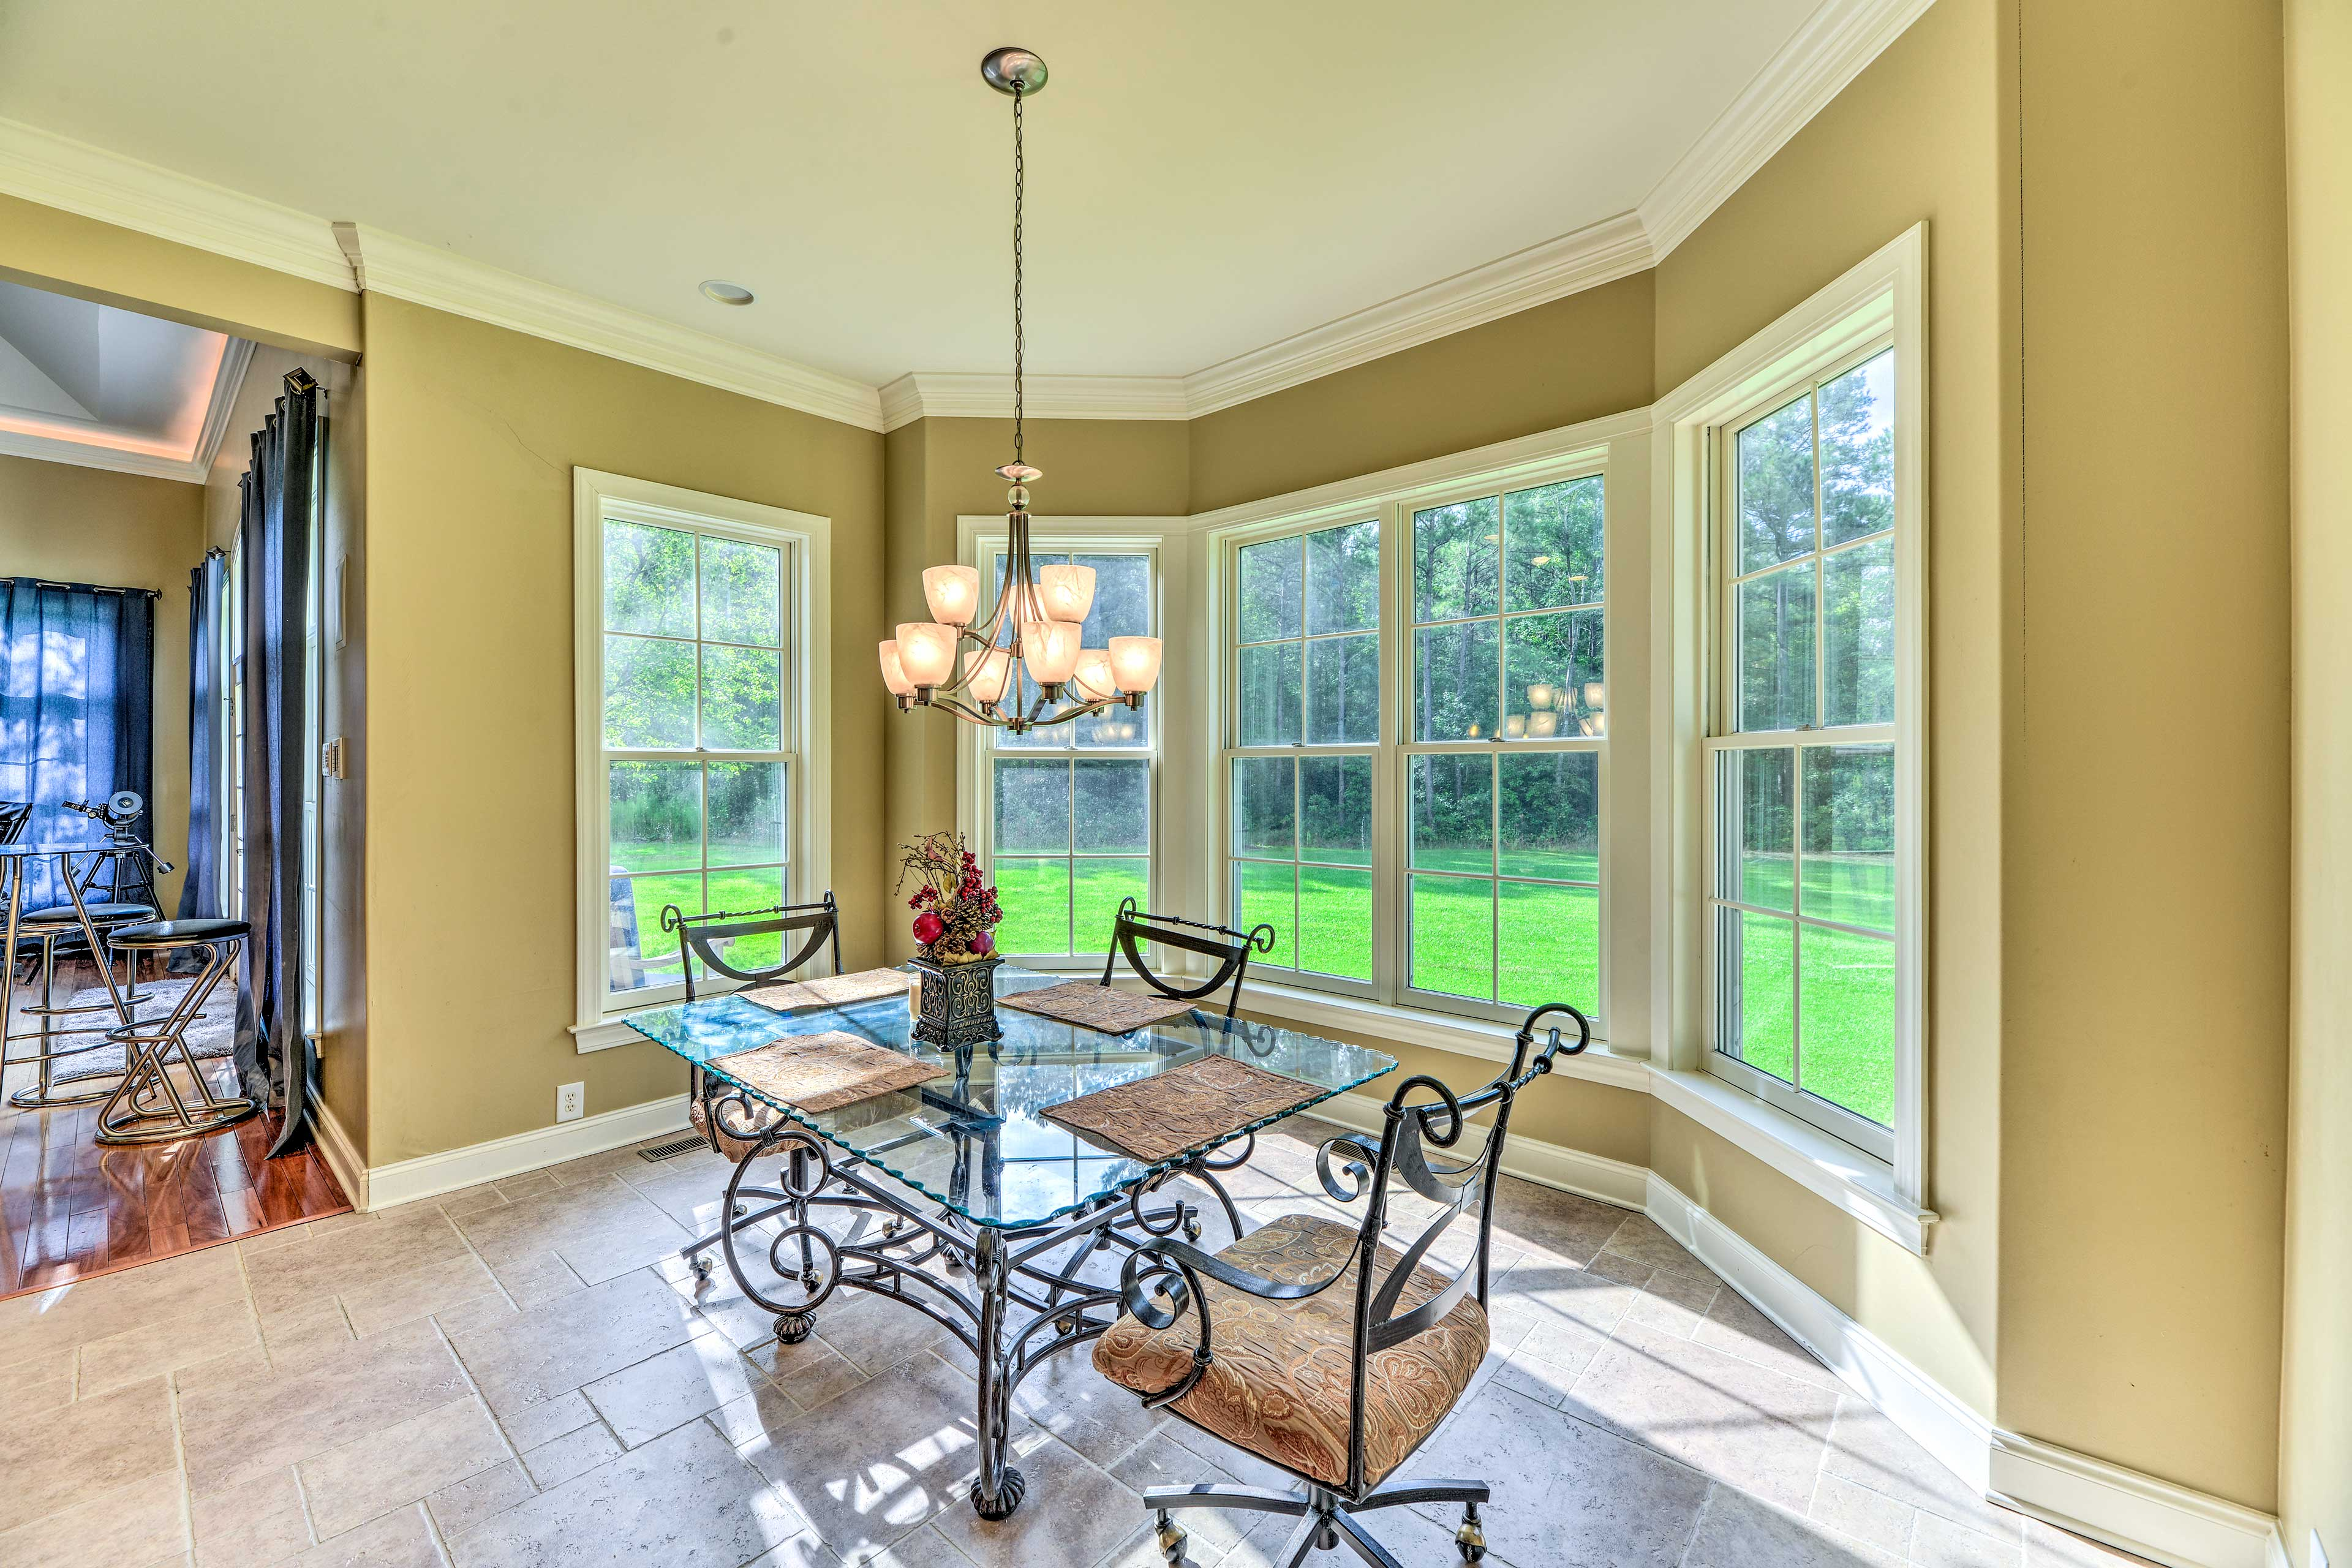 Enjoy meals at the kitchen table overlooking the pristine yard.